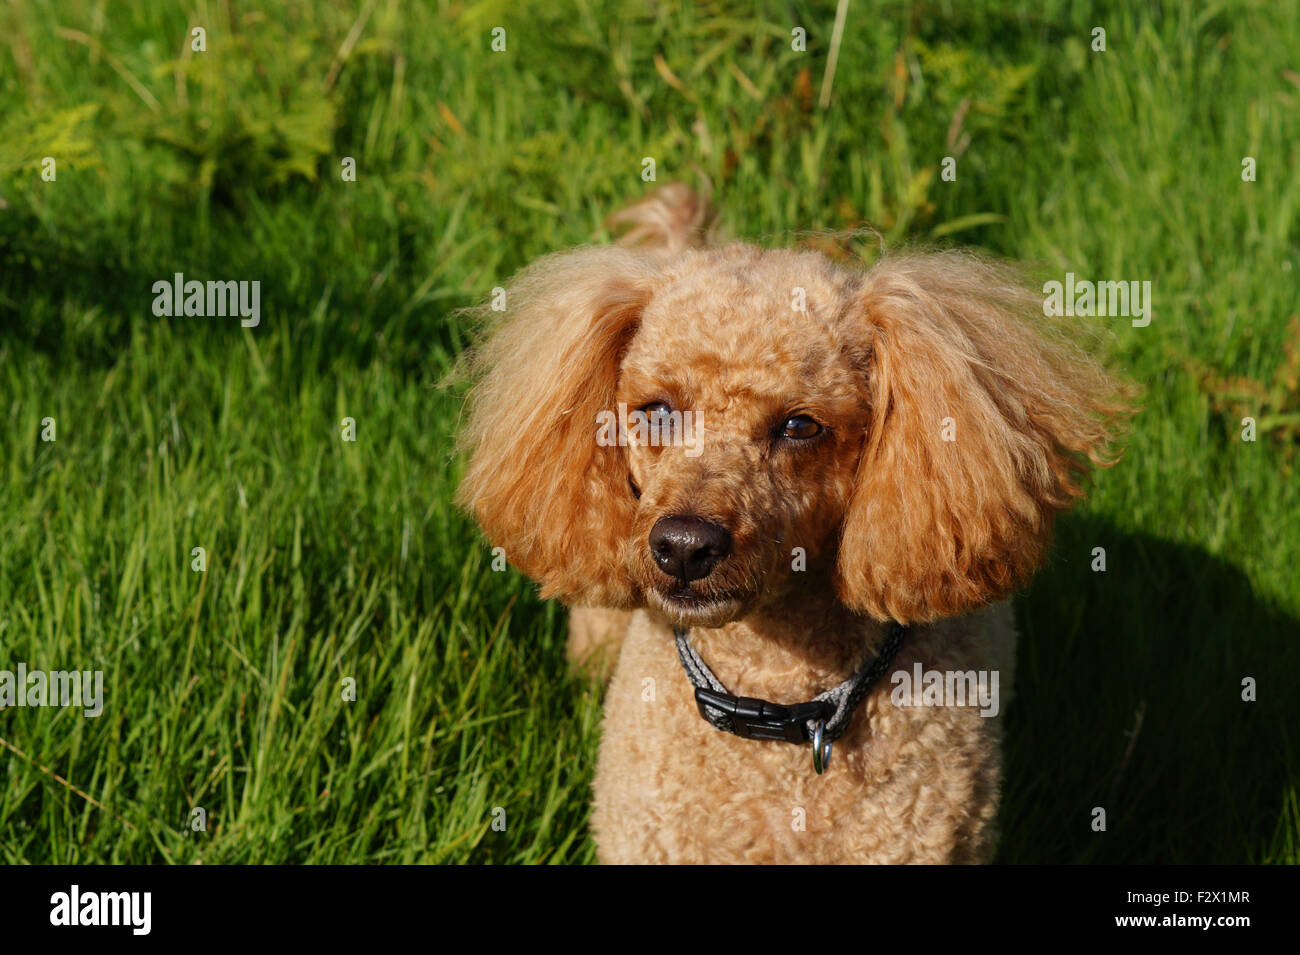 Cute small Red Toy Poodle with fluffy ears lying in the grass Stock Photo